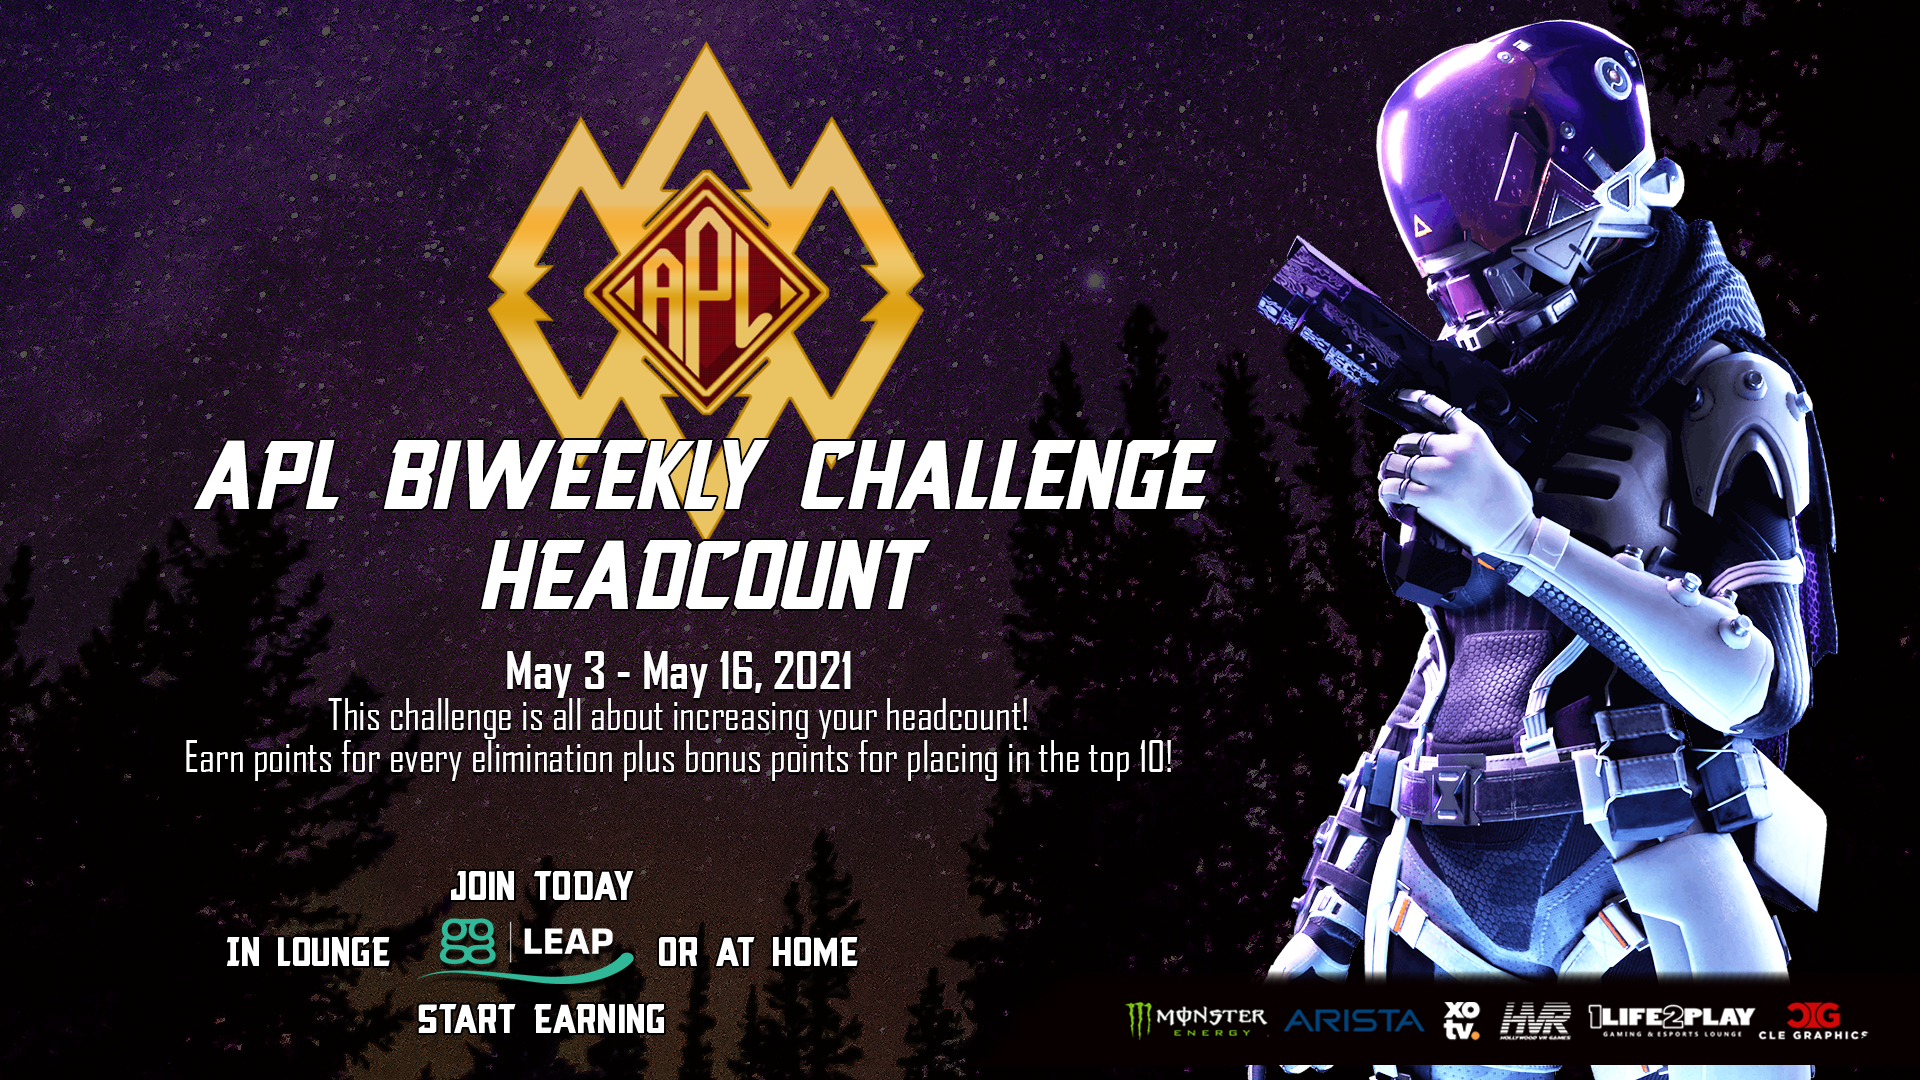 - APL Biweekly Challenge Headcount 4 - Apex Predator League presented by 1Life2Play fueled by Monster Energy